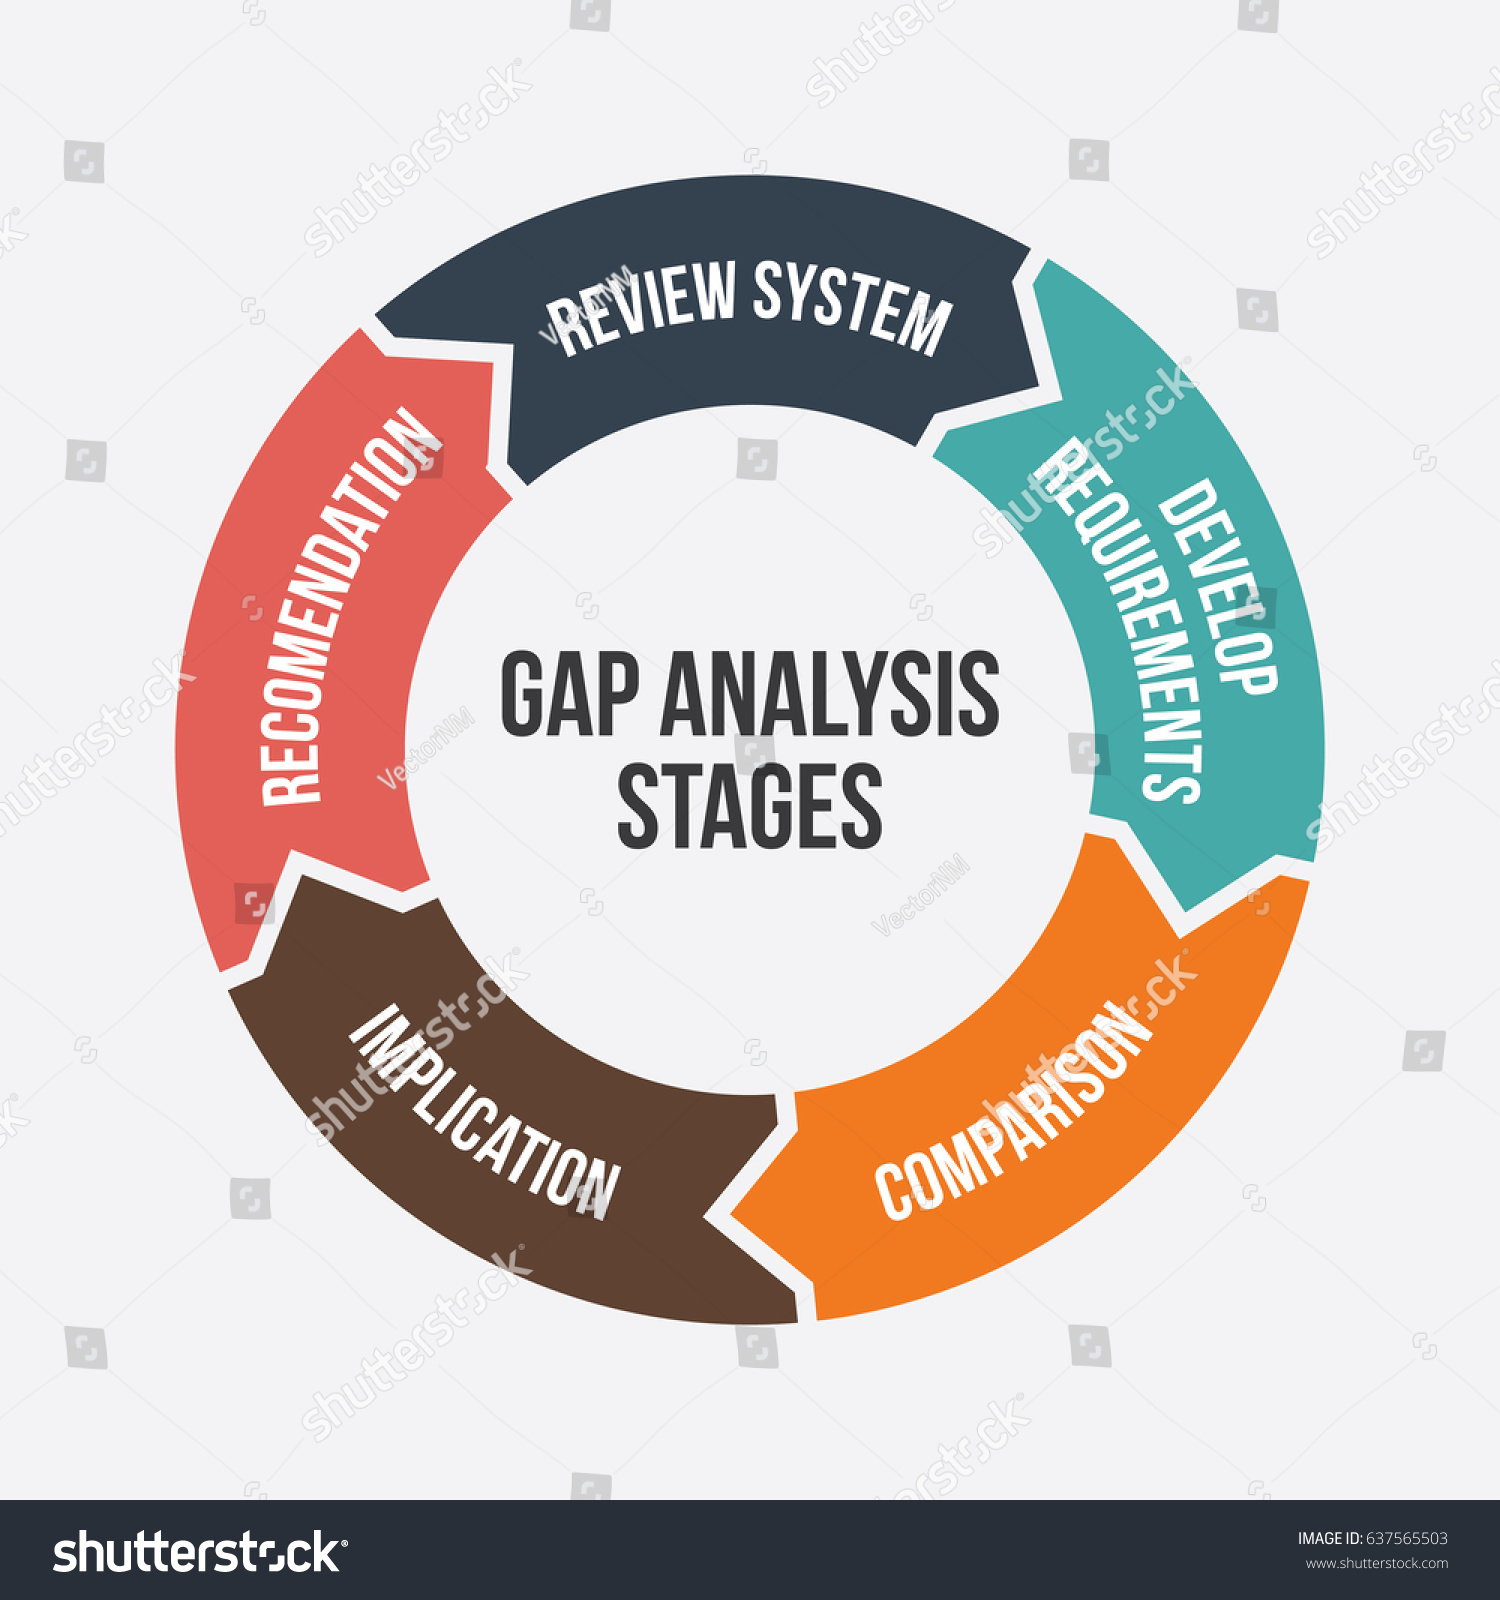 Gap Analysis Stages Diagram Illustration Business Stock Vector 637565503